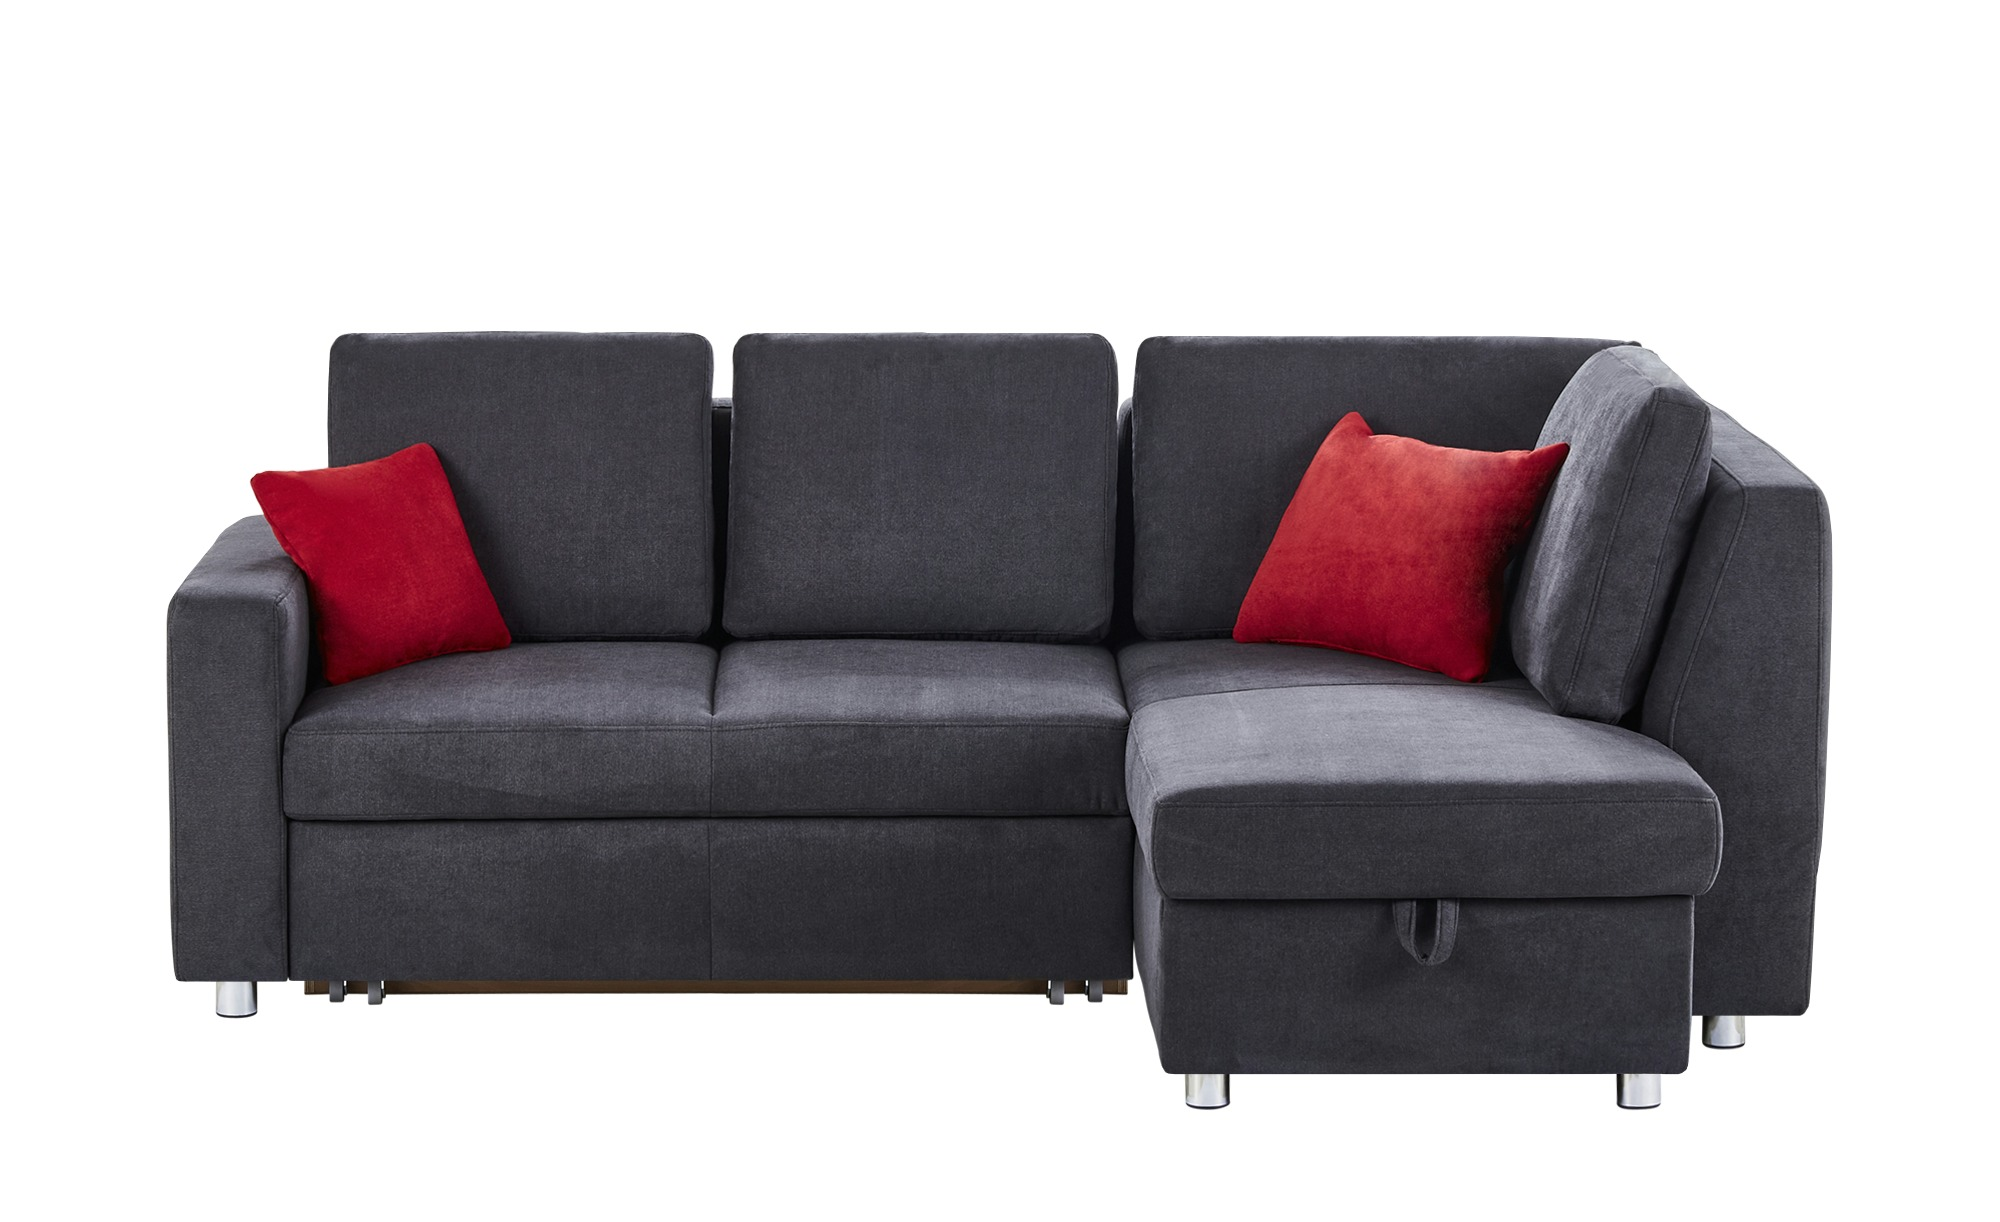 ecksofa michaela breite h he 90 cm grau online kaufen bei woonio. Black Bedroom Furniture Sets. Home Design Ideas